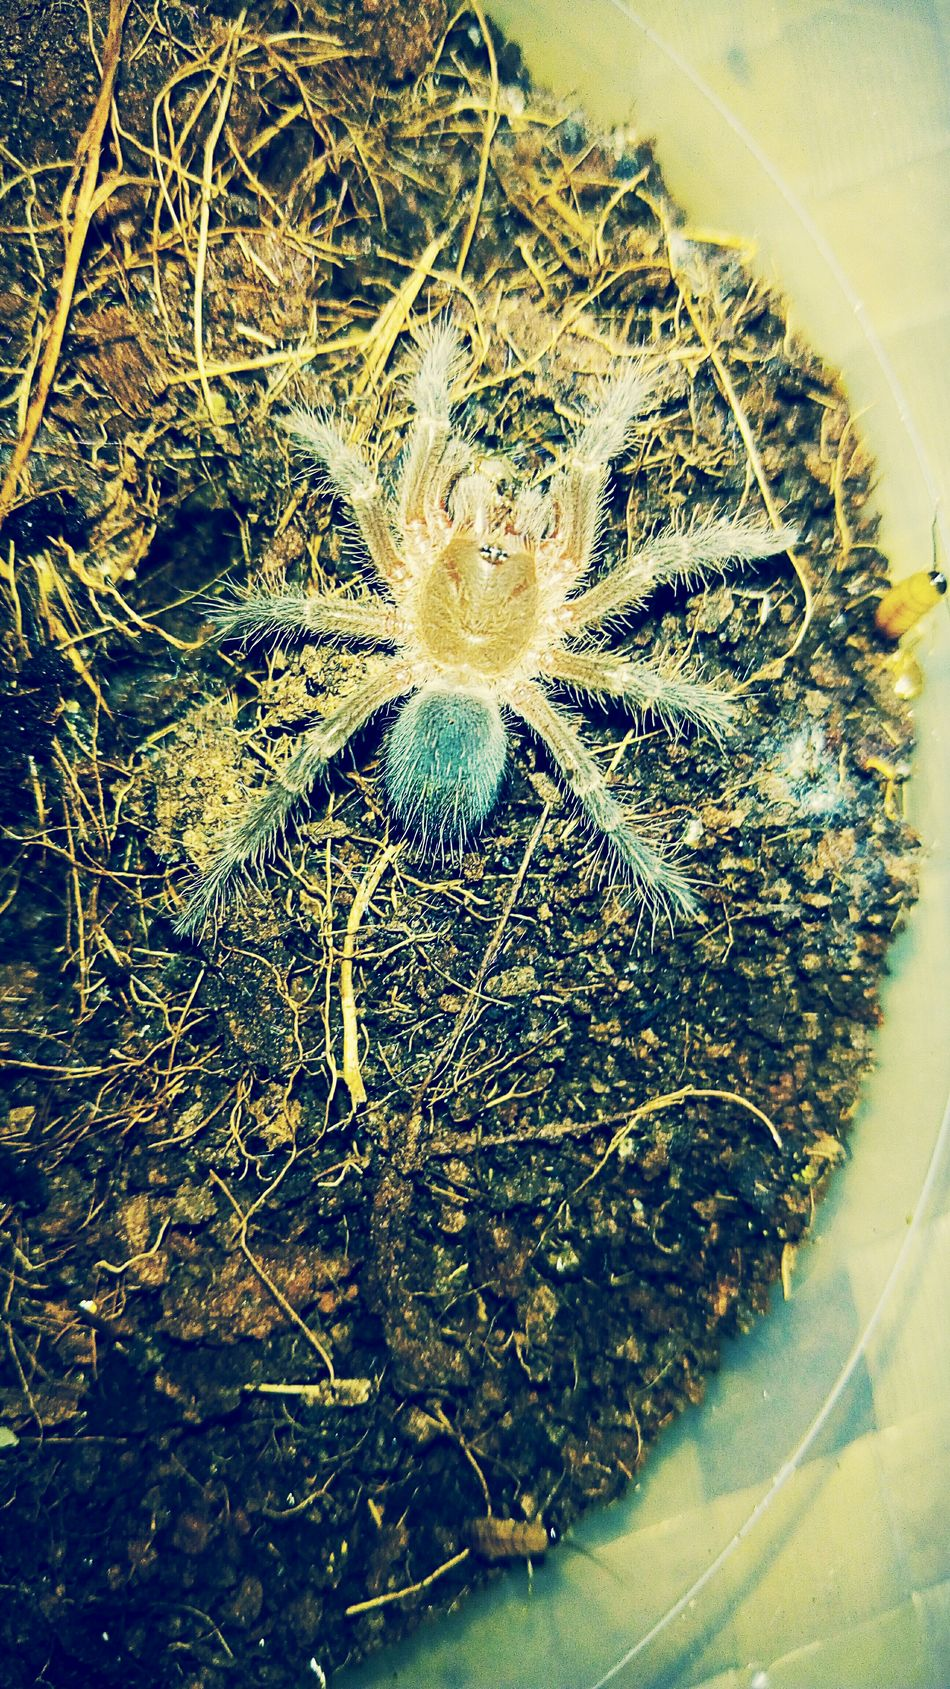 Tarantula Close-up Gold Colored Vagan Sling Spider Baby One Animal Animals Pets Petlover No People Full Frame Backgrounds Indoors  Day